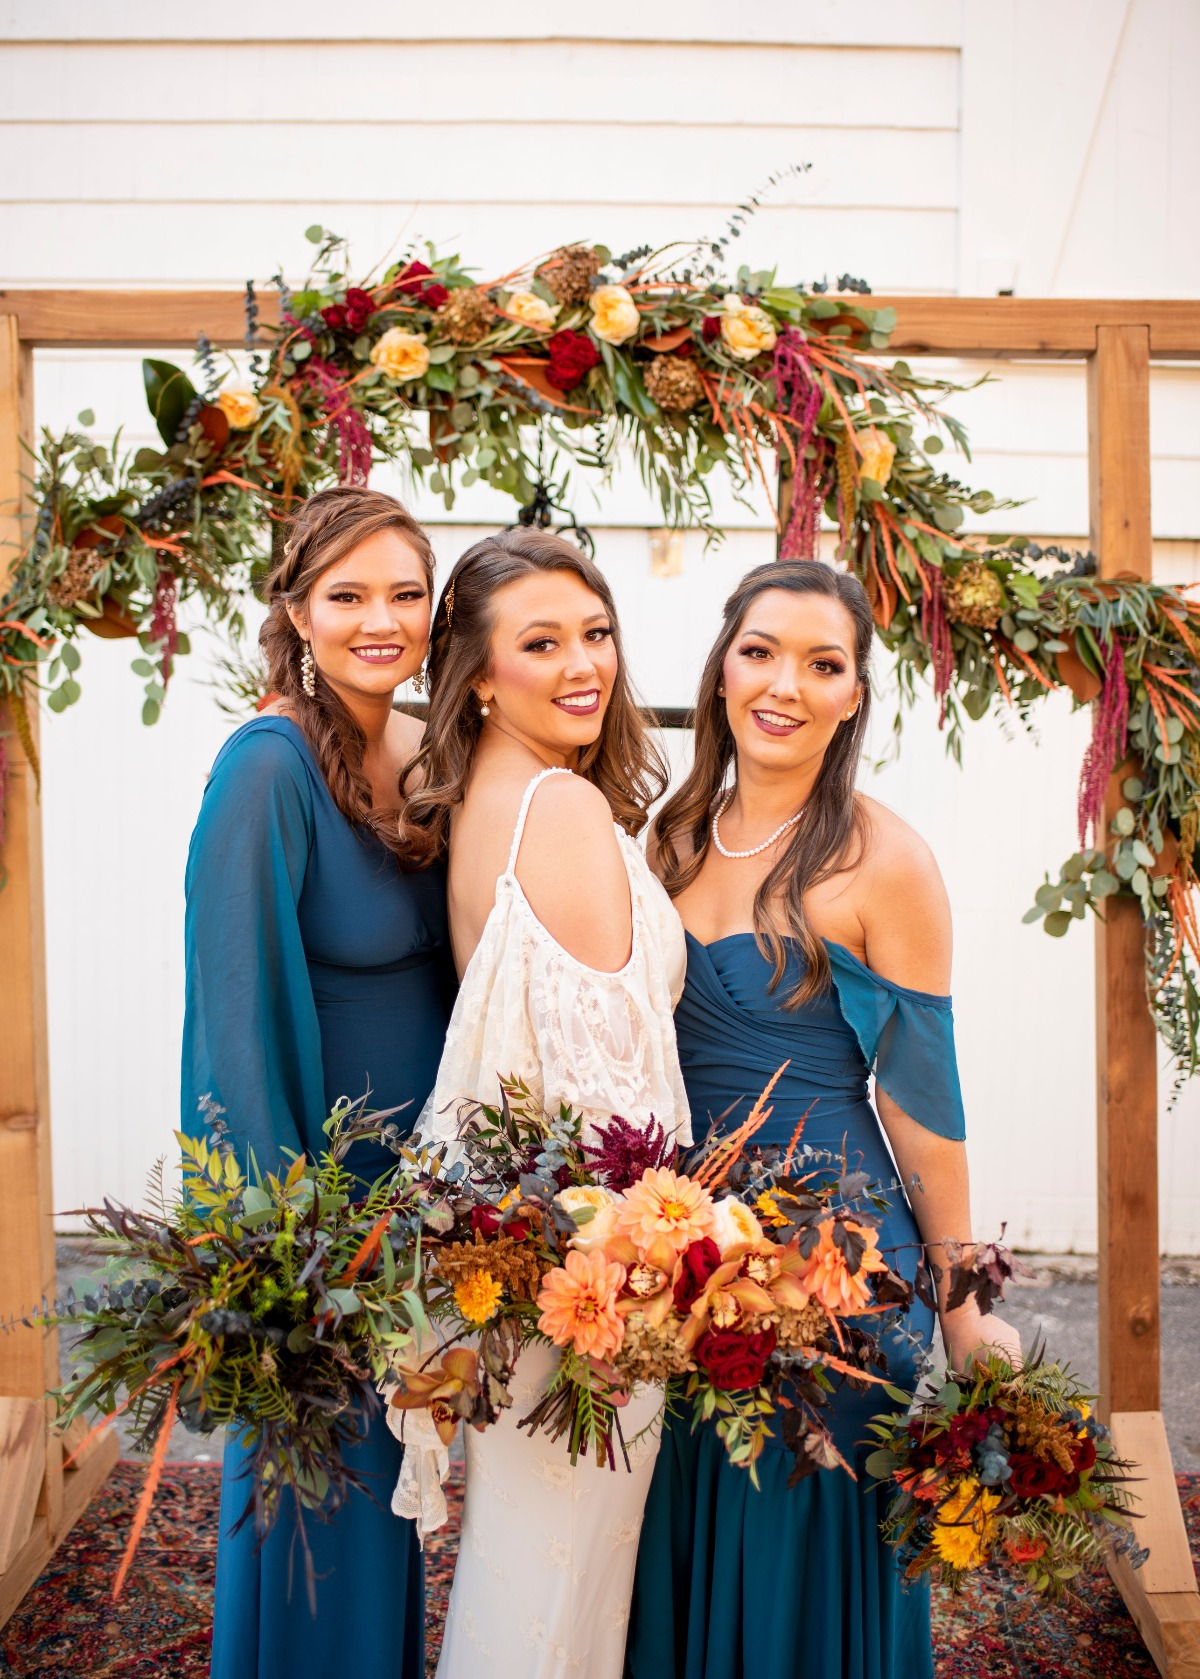 Fall wedding with blue bridesmaid dresses